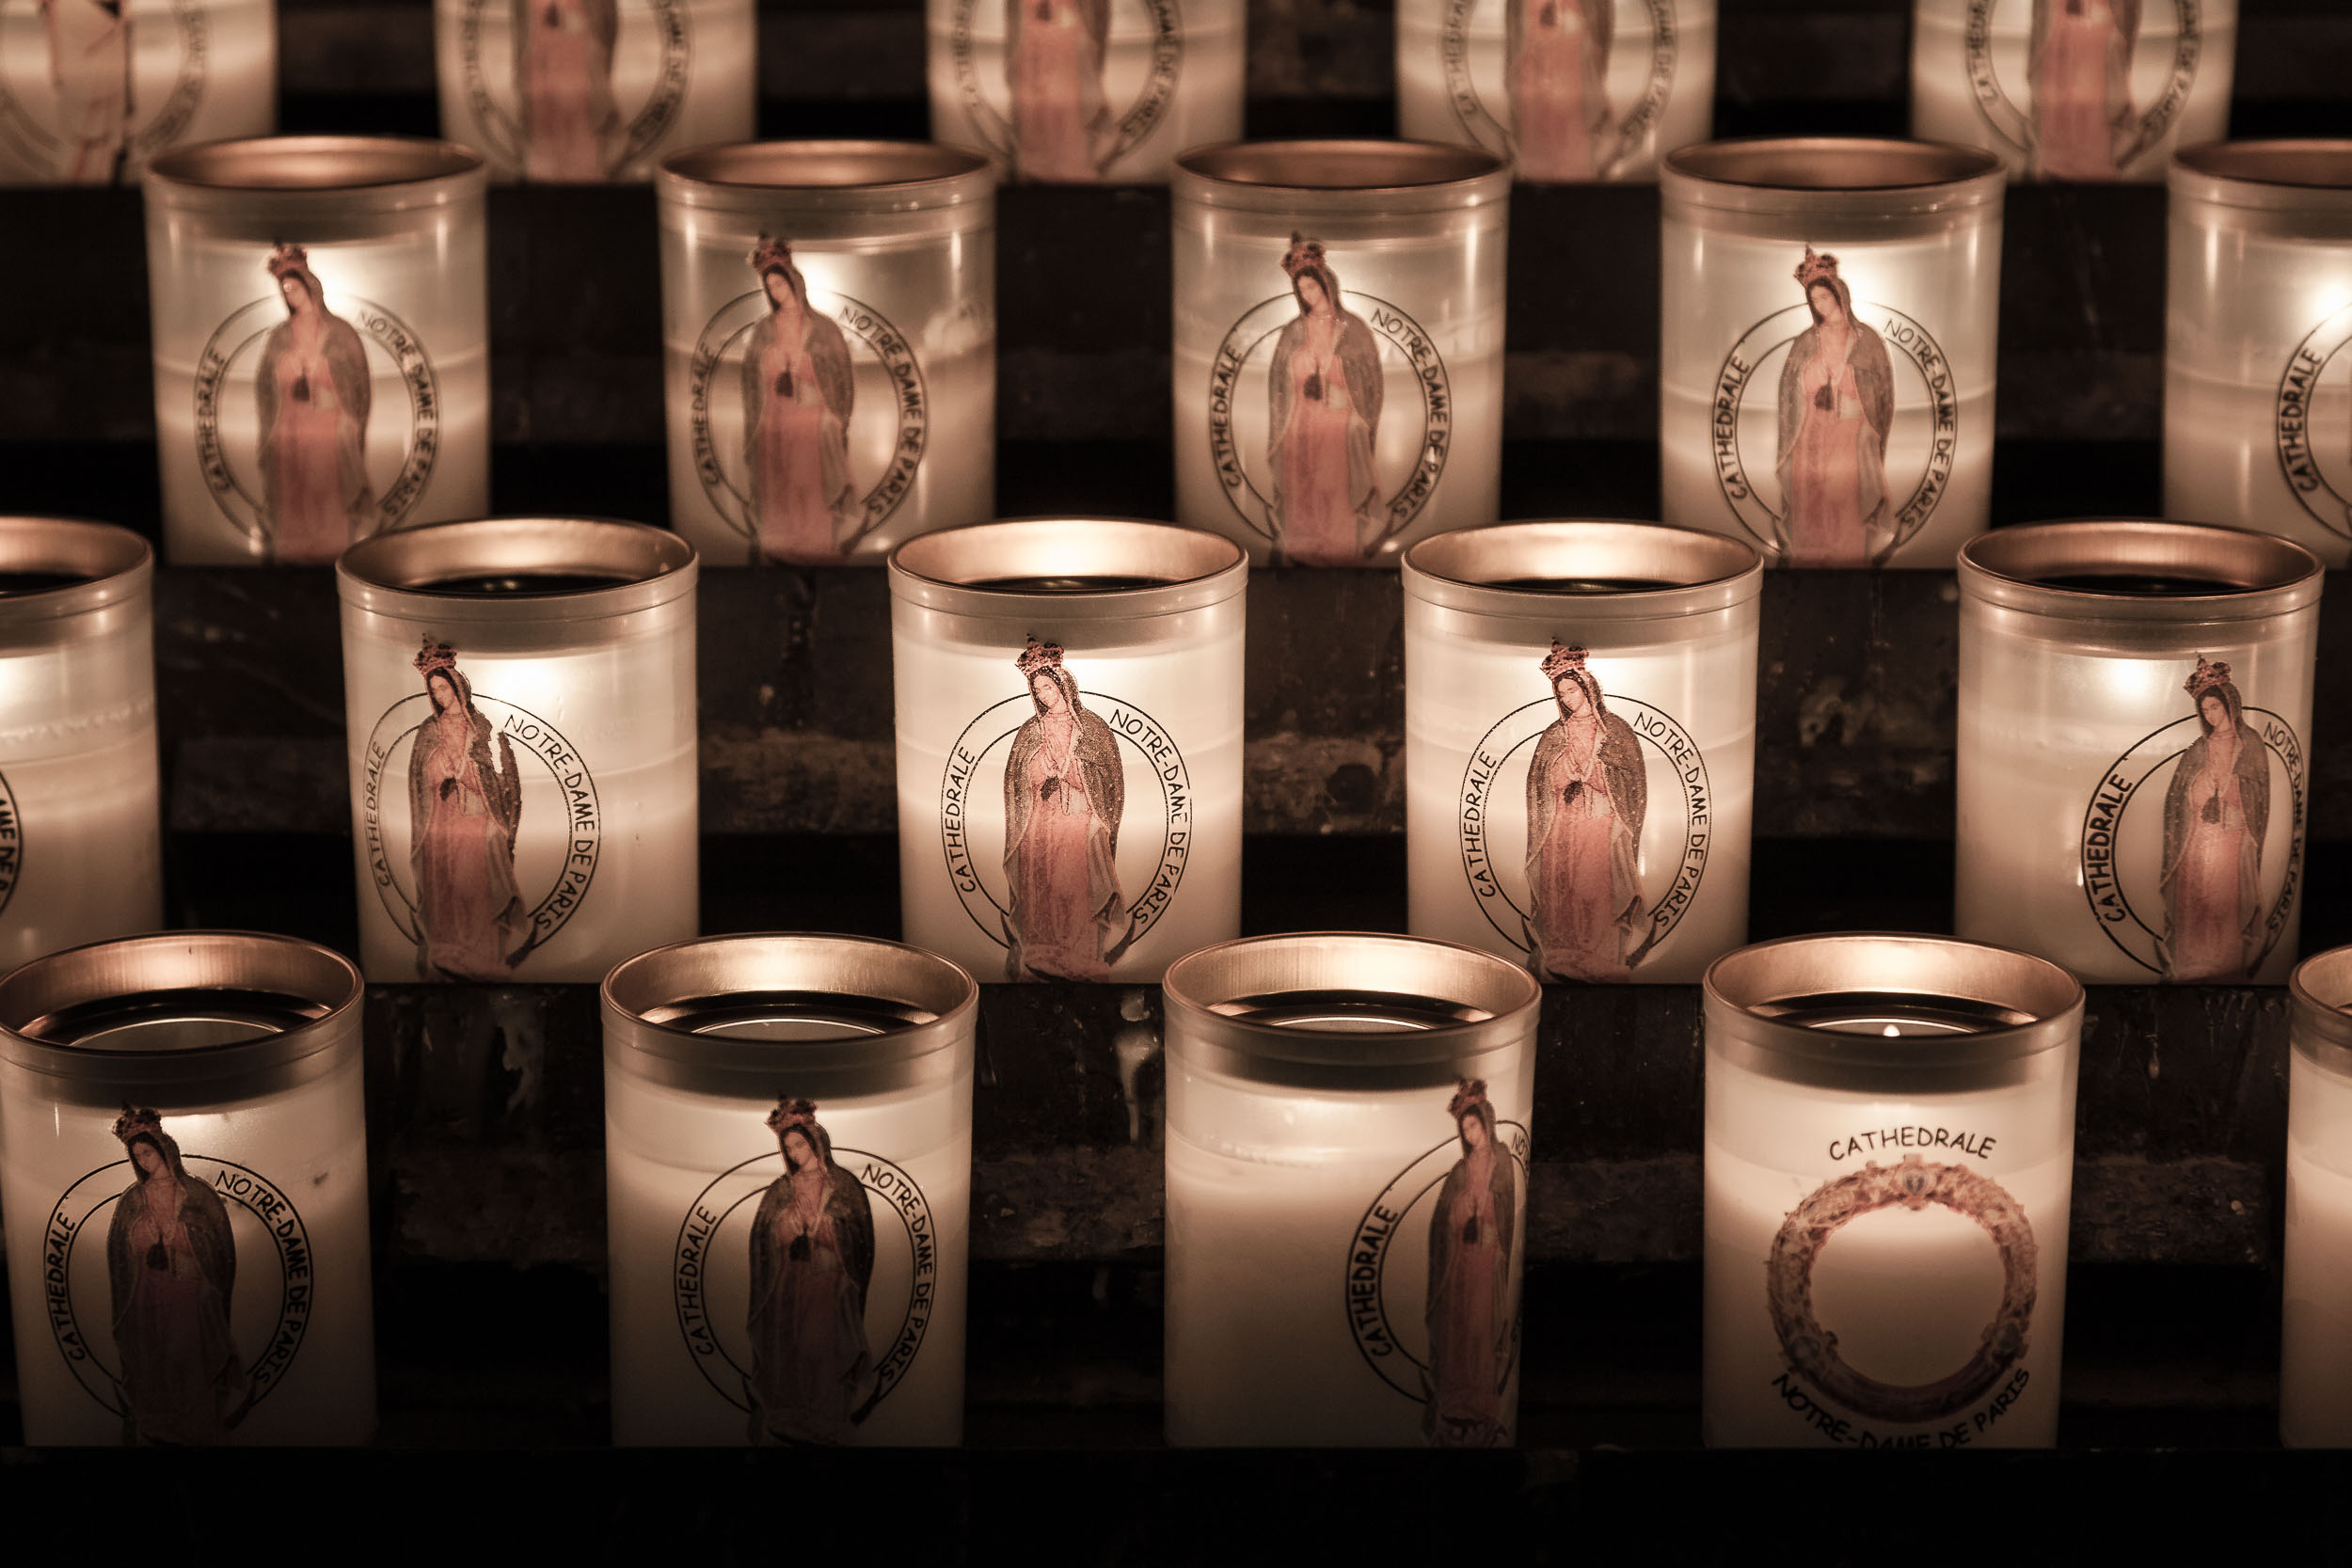 A close up view of  candles , featuring the  Virgin Mary , inside the  Notre Dame Cathedral  in Paris, France. This version shows a  subtle pink color rendering  in the candles.